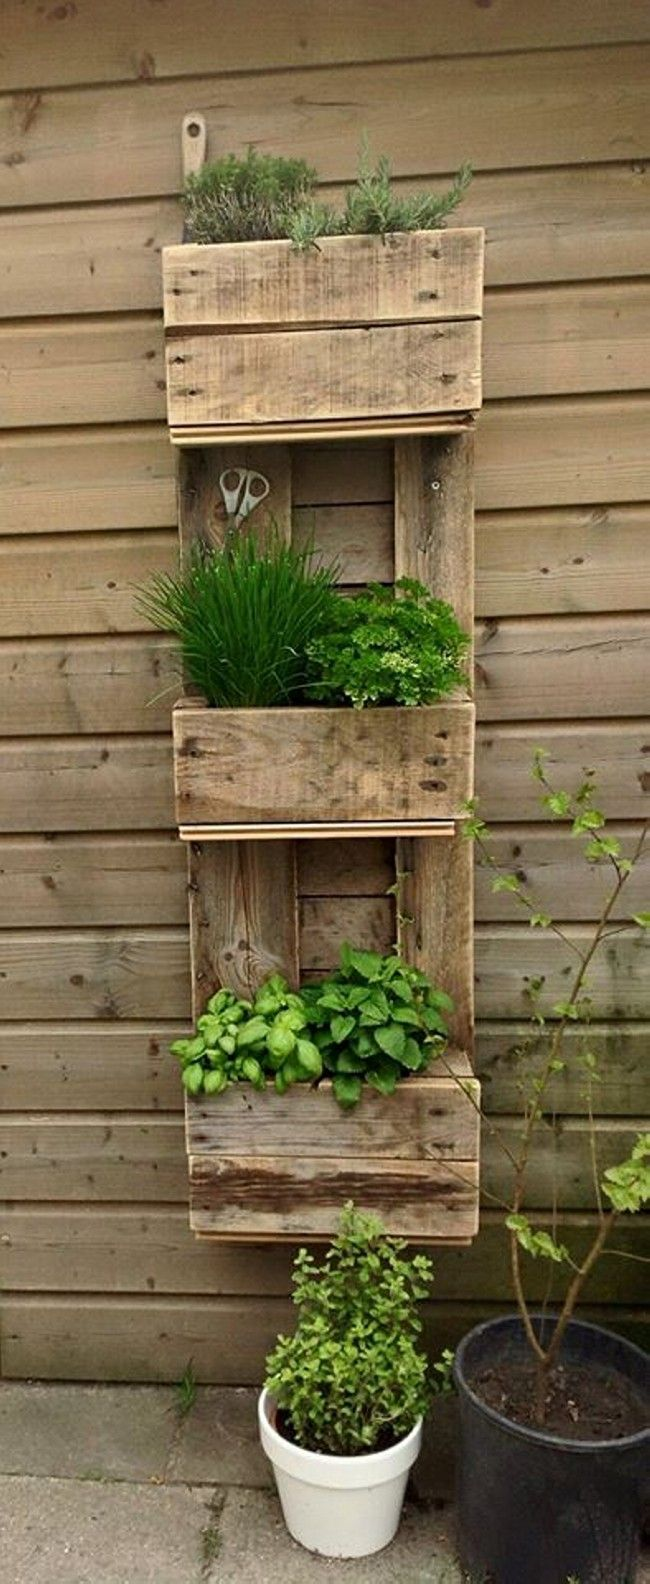 Diy pallet garden projects diy rustic pallet planter box creative - Find This Pin And More On Vertical Gardens